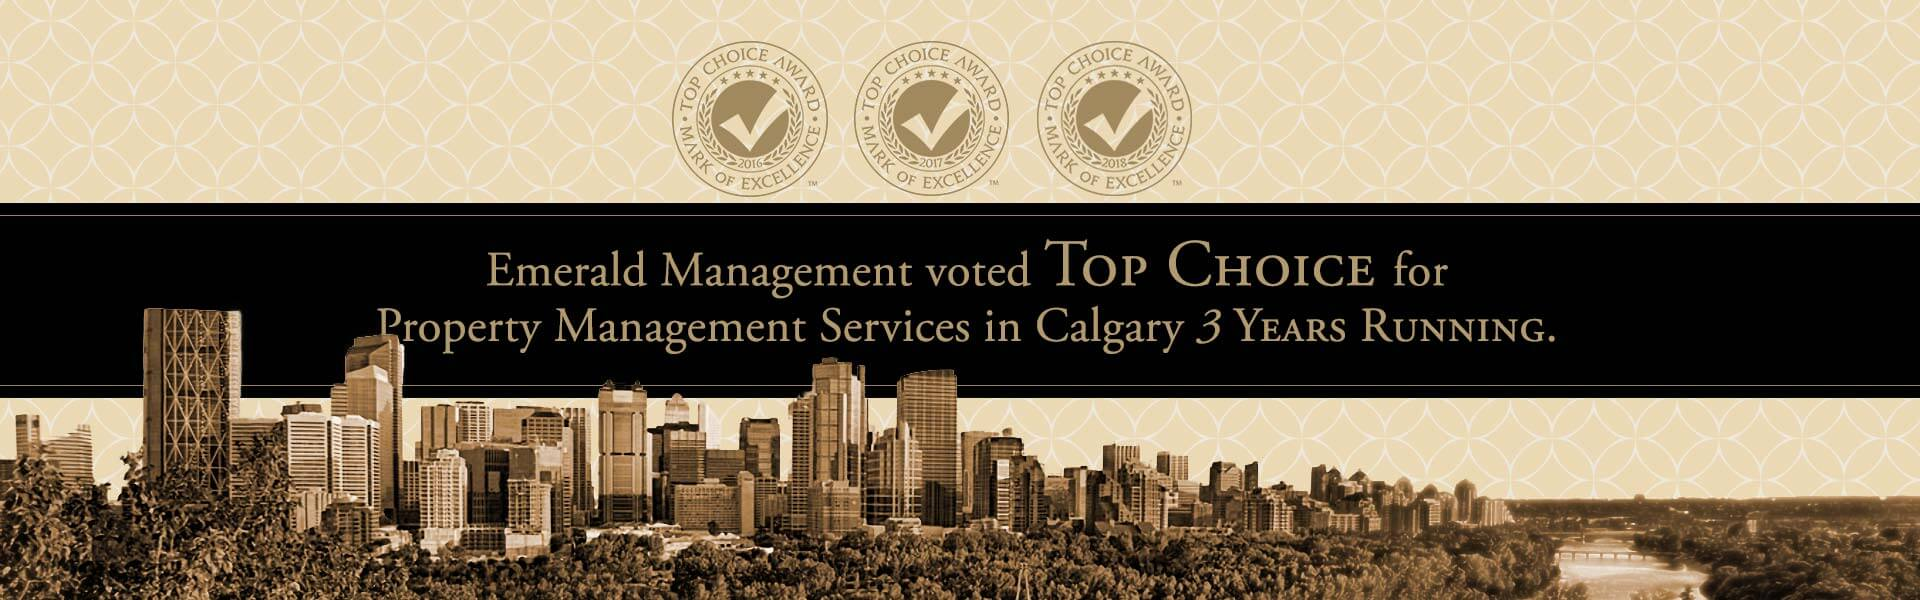 Top Choice for Property Management Services in Calgary